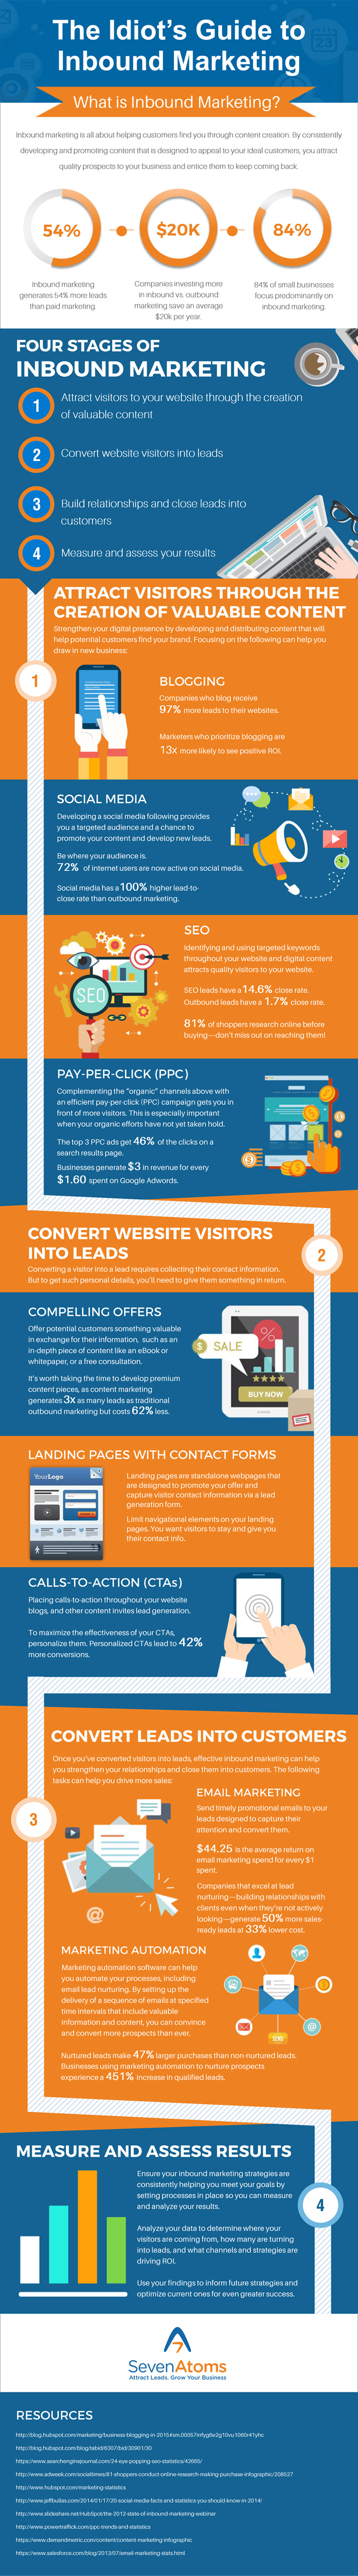 Inbound Marketing Infographic: The Idiot's Guide to Inbound Marketing